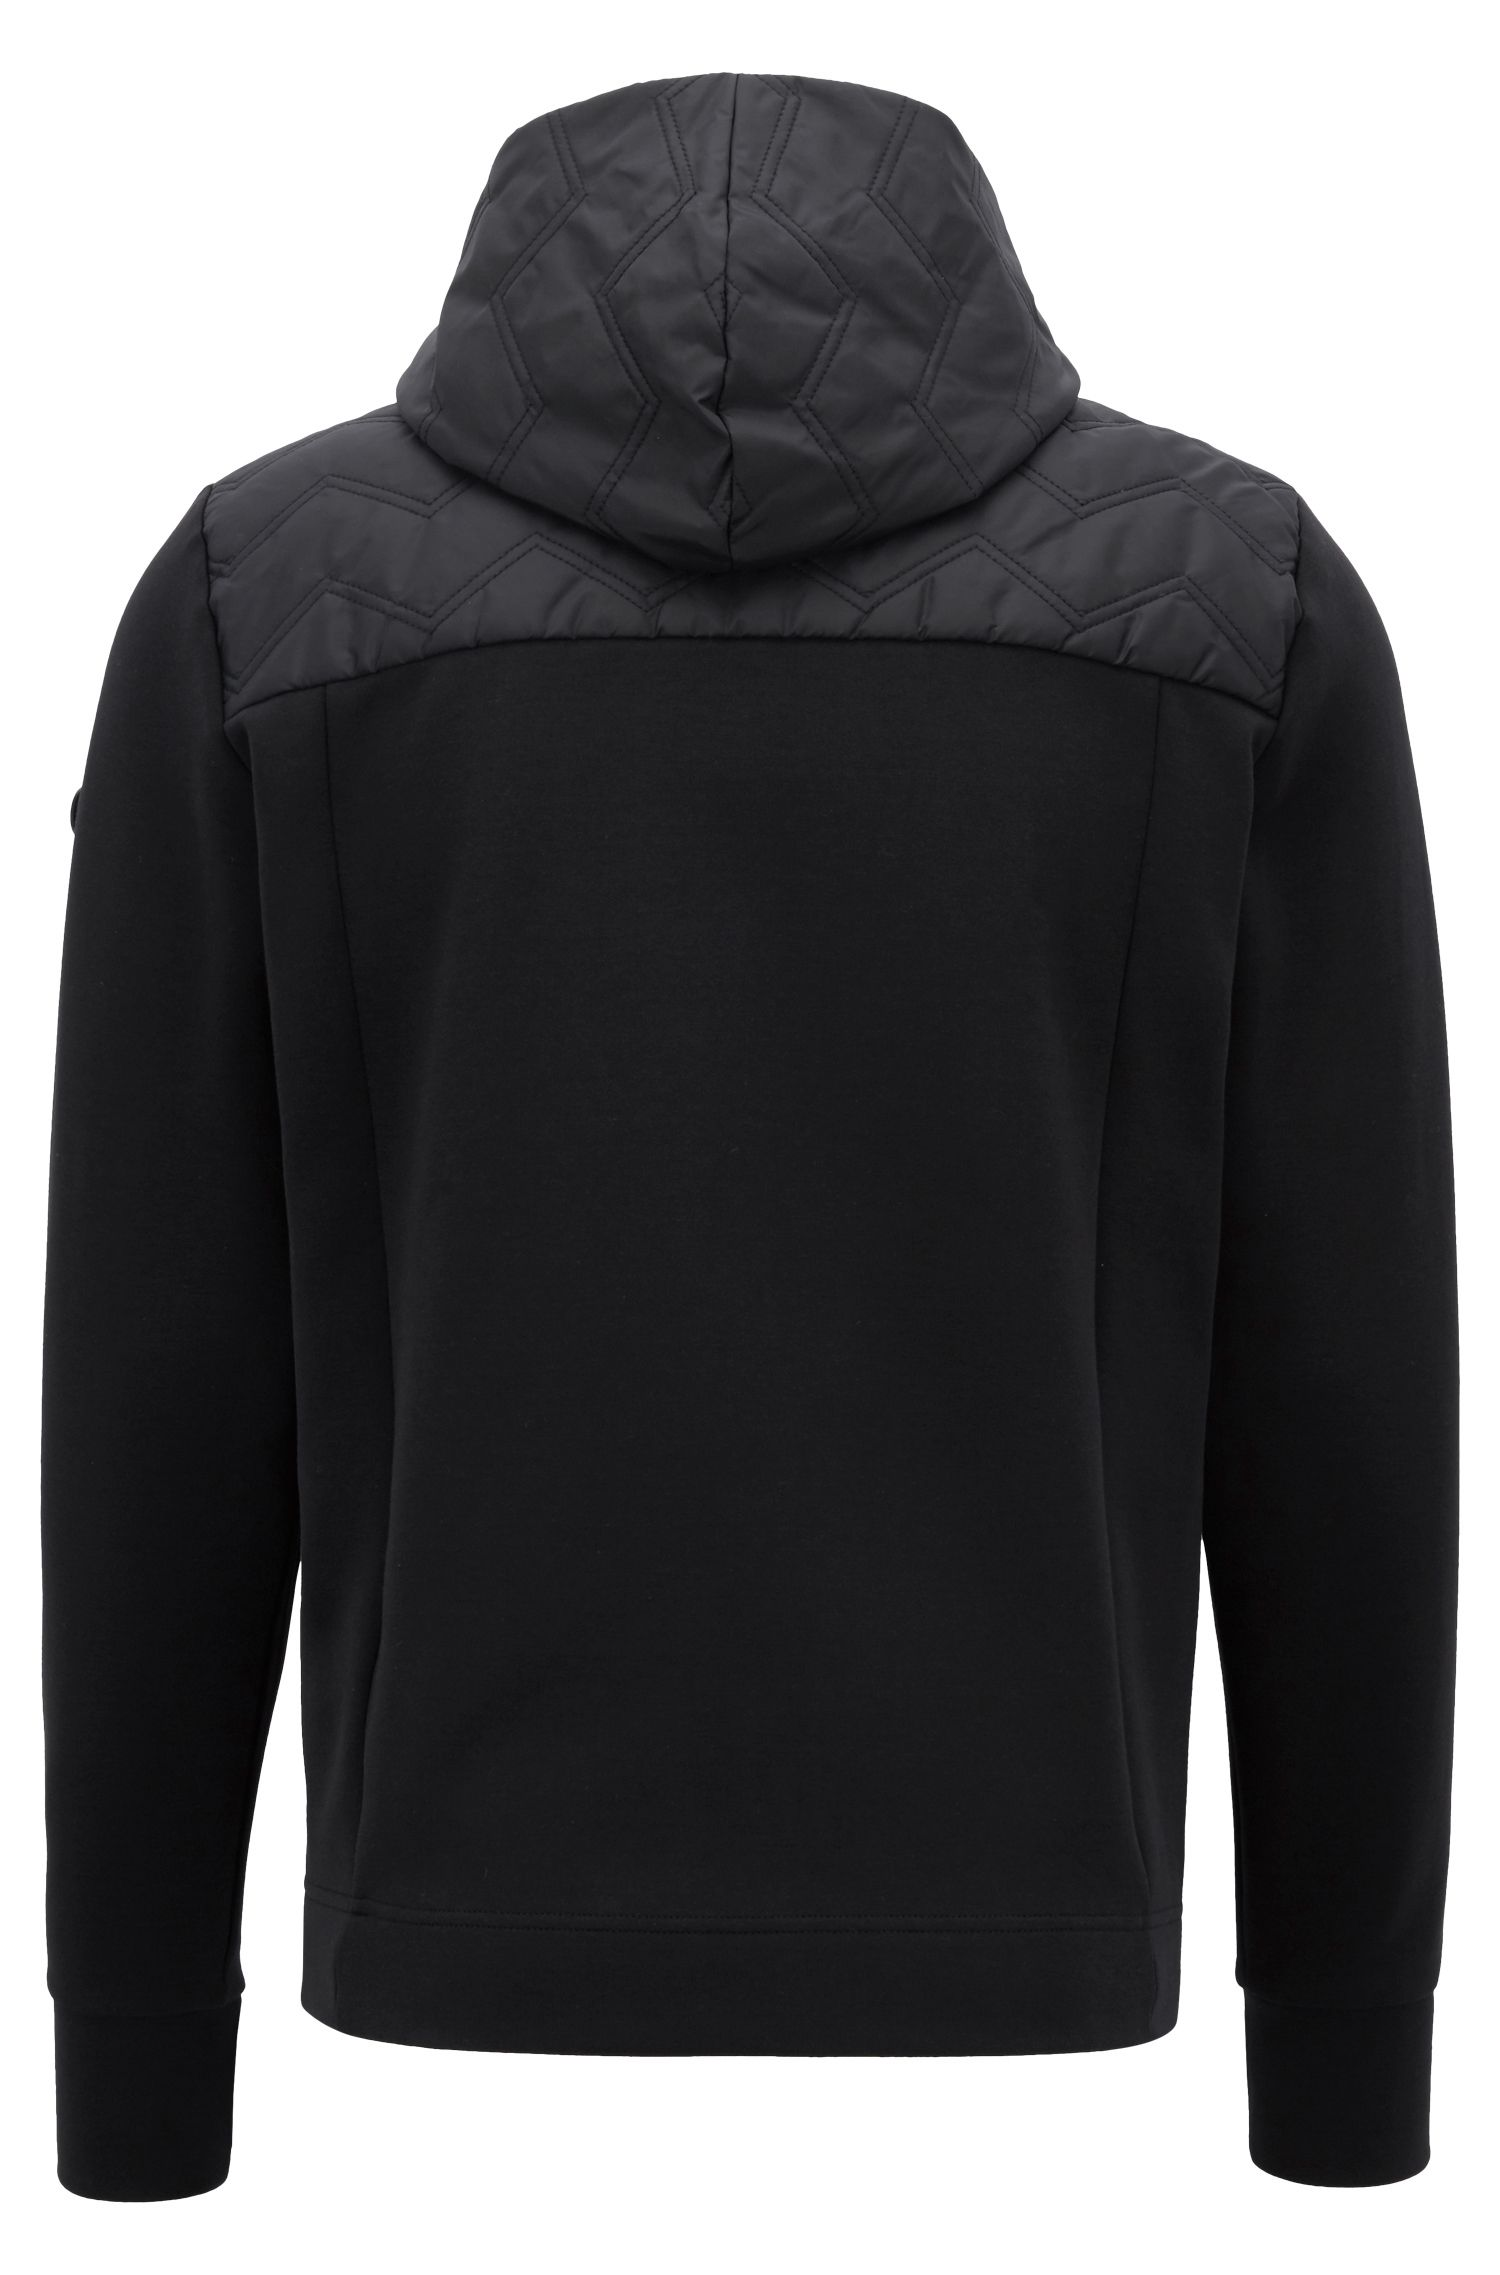 Zip-through sweatshirt with quilted panel and detachable hood, Black